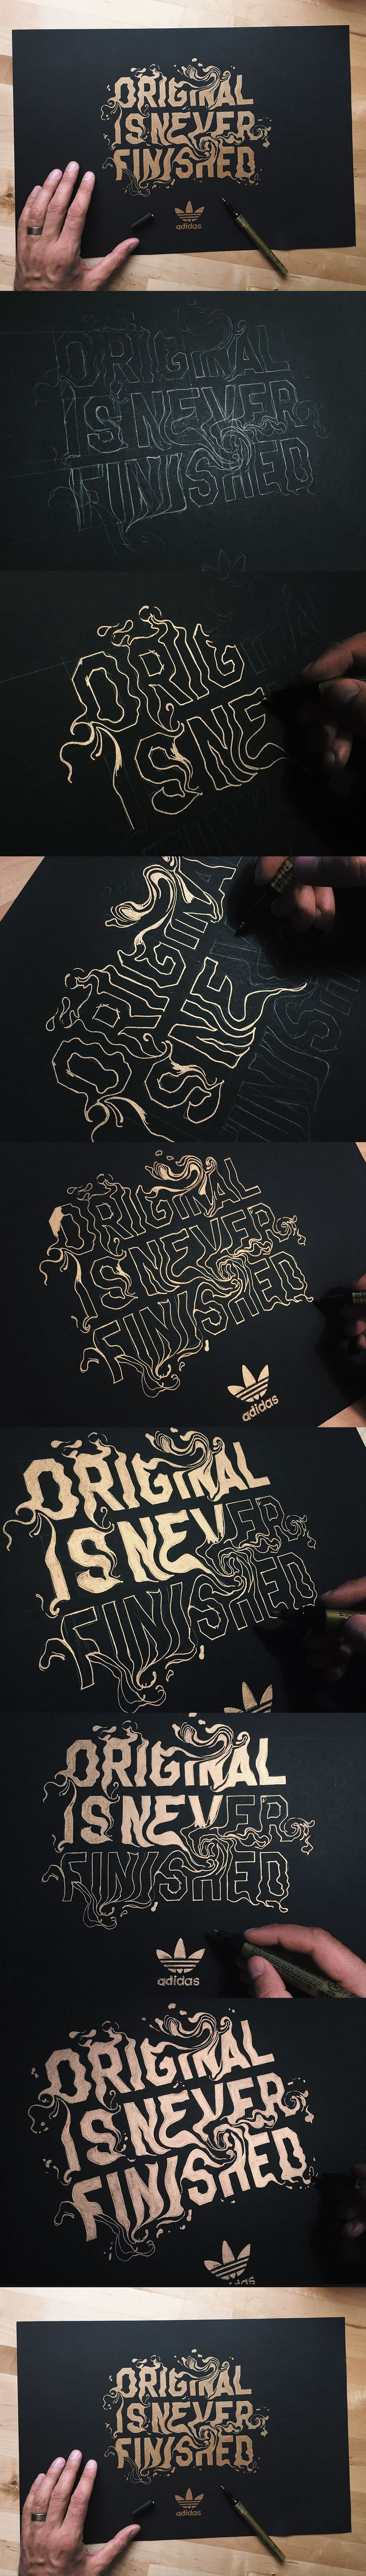 Adidas Typography | Original Is Never Finished on Behance